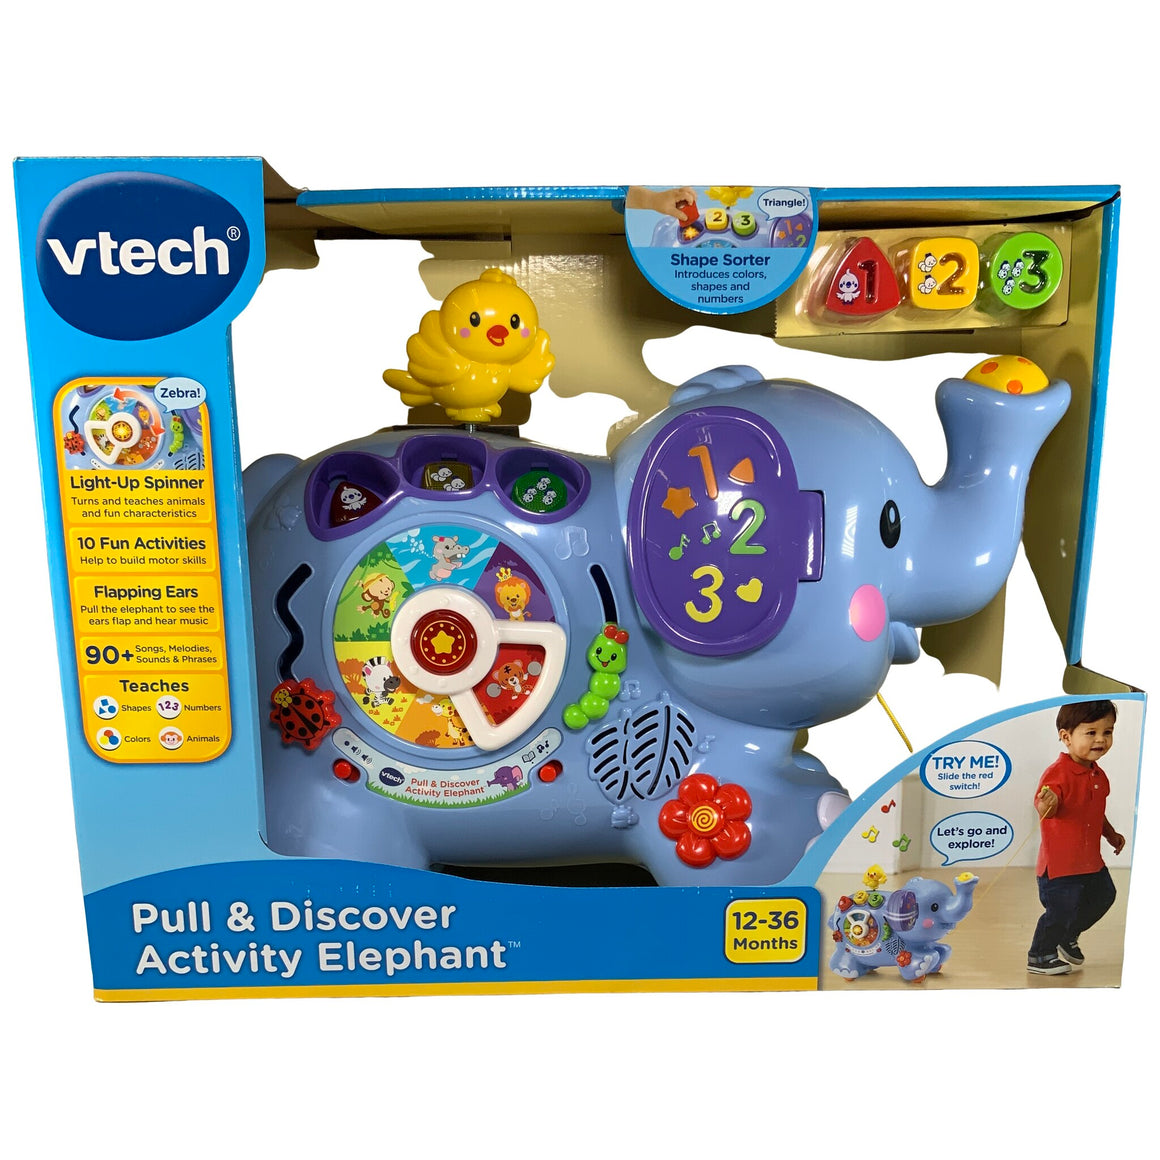 Vtech - Pull & Discover Activity Elephant